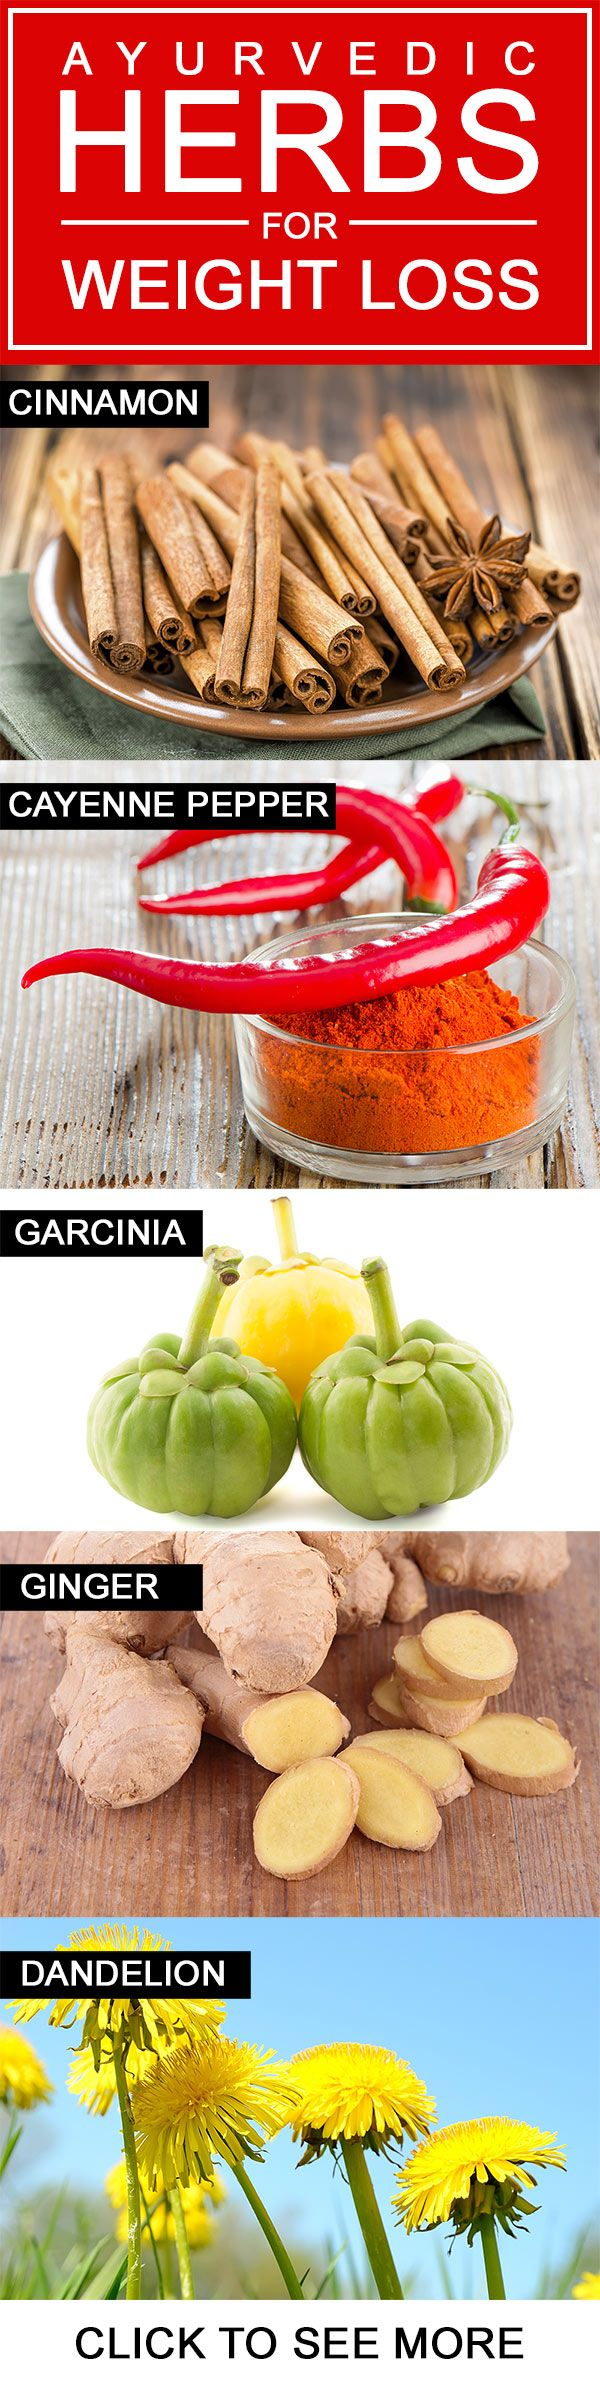 Herbs for weight loss Top 10 Amazing Herbs For Weight Loss